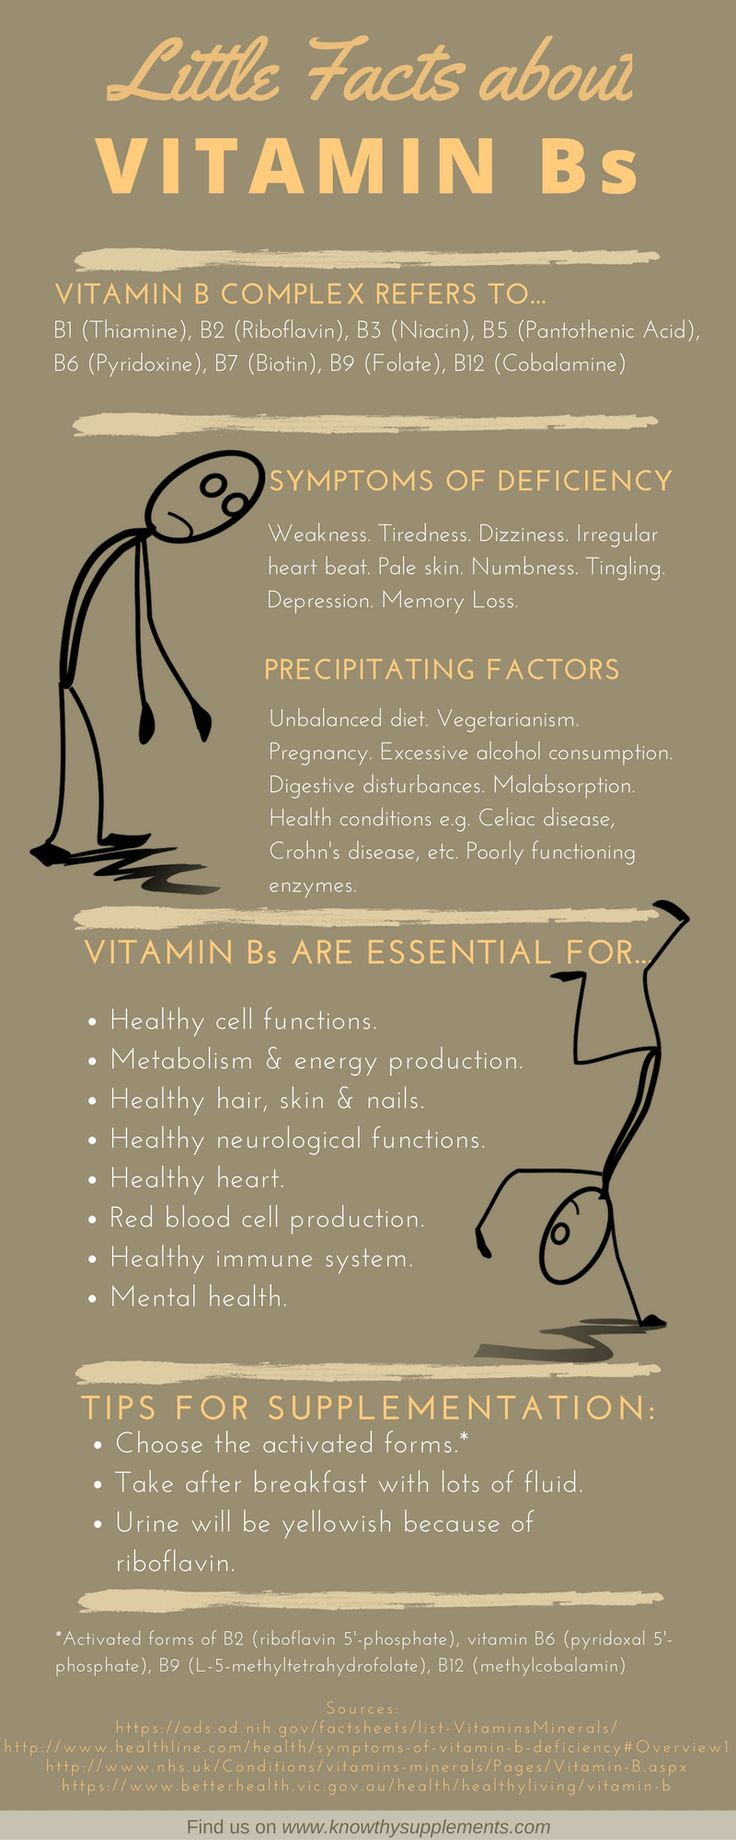 Vitamin B complex [B1 (Thiamine), B2 (Riboflavin), B3 (Niacin), B5 (Pantothenic Acid), B6 (Pyridoxine), B7 (Biotin), B9 (Folate) and B12 (Cobalamine).]: symptoms of deficiency, reasons, benefits (energy, skin) and tips on taking vit b supplement